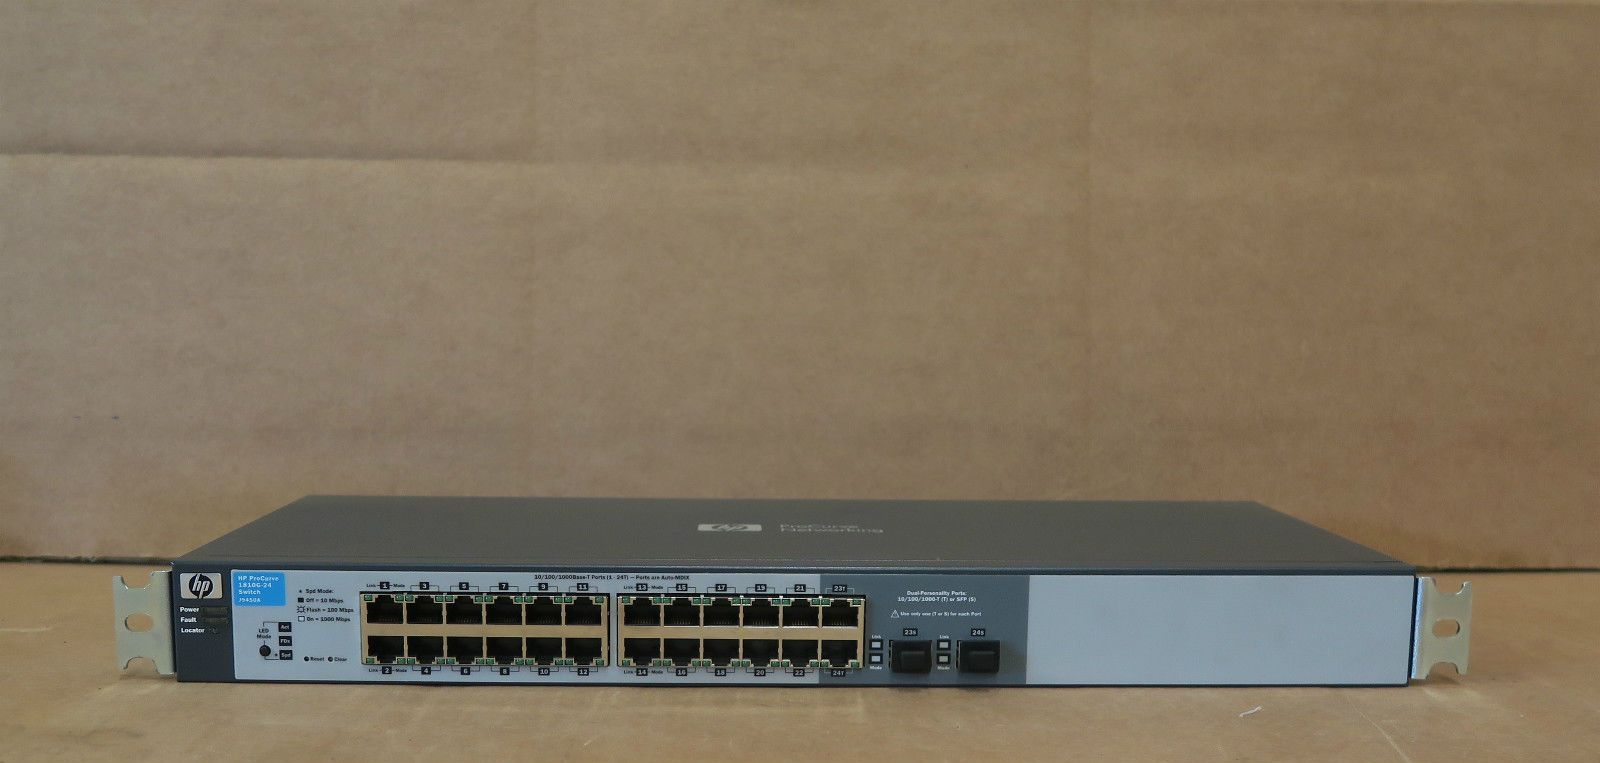 Hp Procurve 1810g 24 24 Port Layer 2 Managed Ethernet